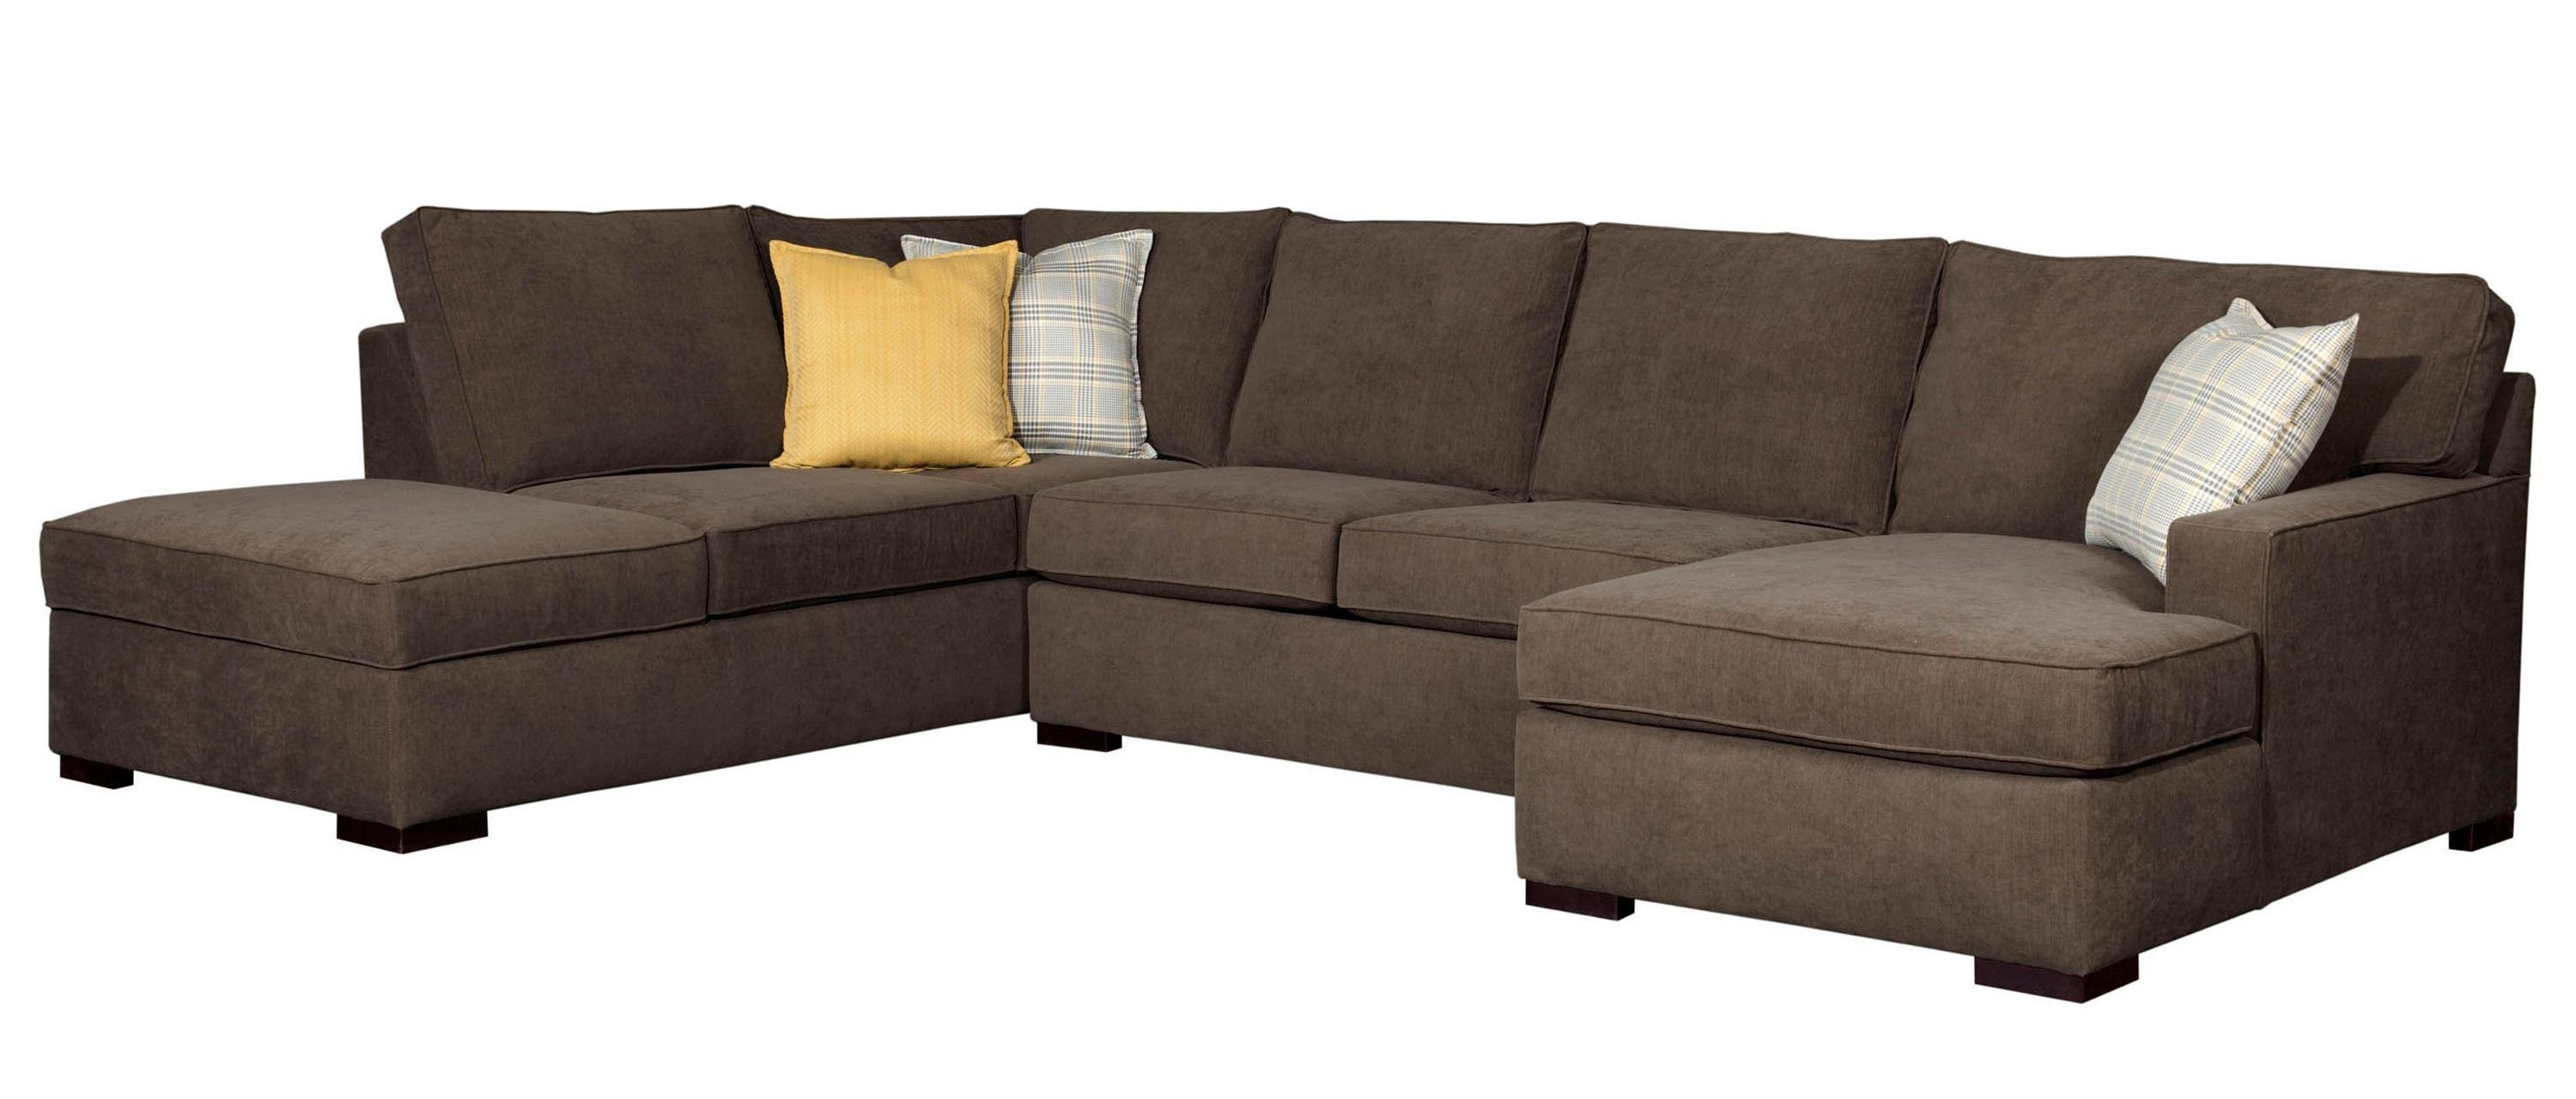 Broyhill Furniture Raphael Contemporary Sectional Sofa With Raf Within Broyhill Sectional Sofa (Image 7 of 15)